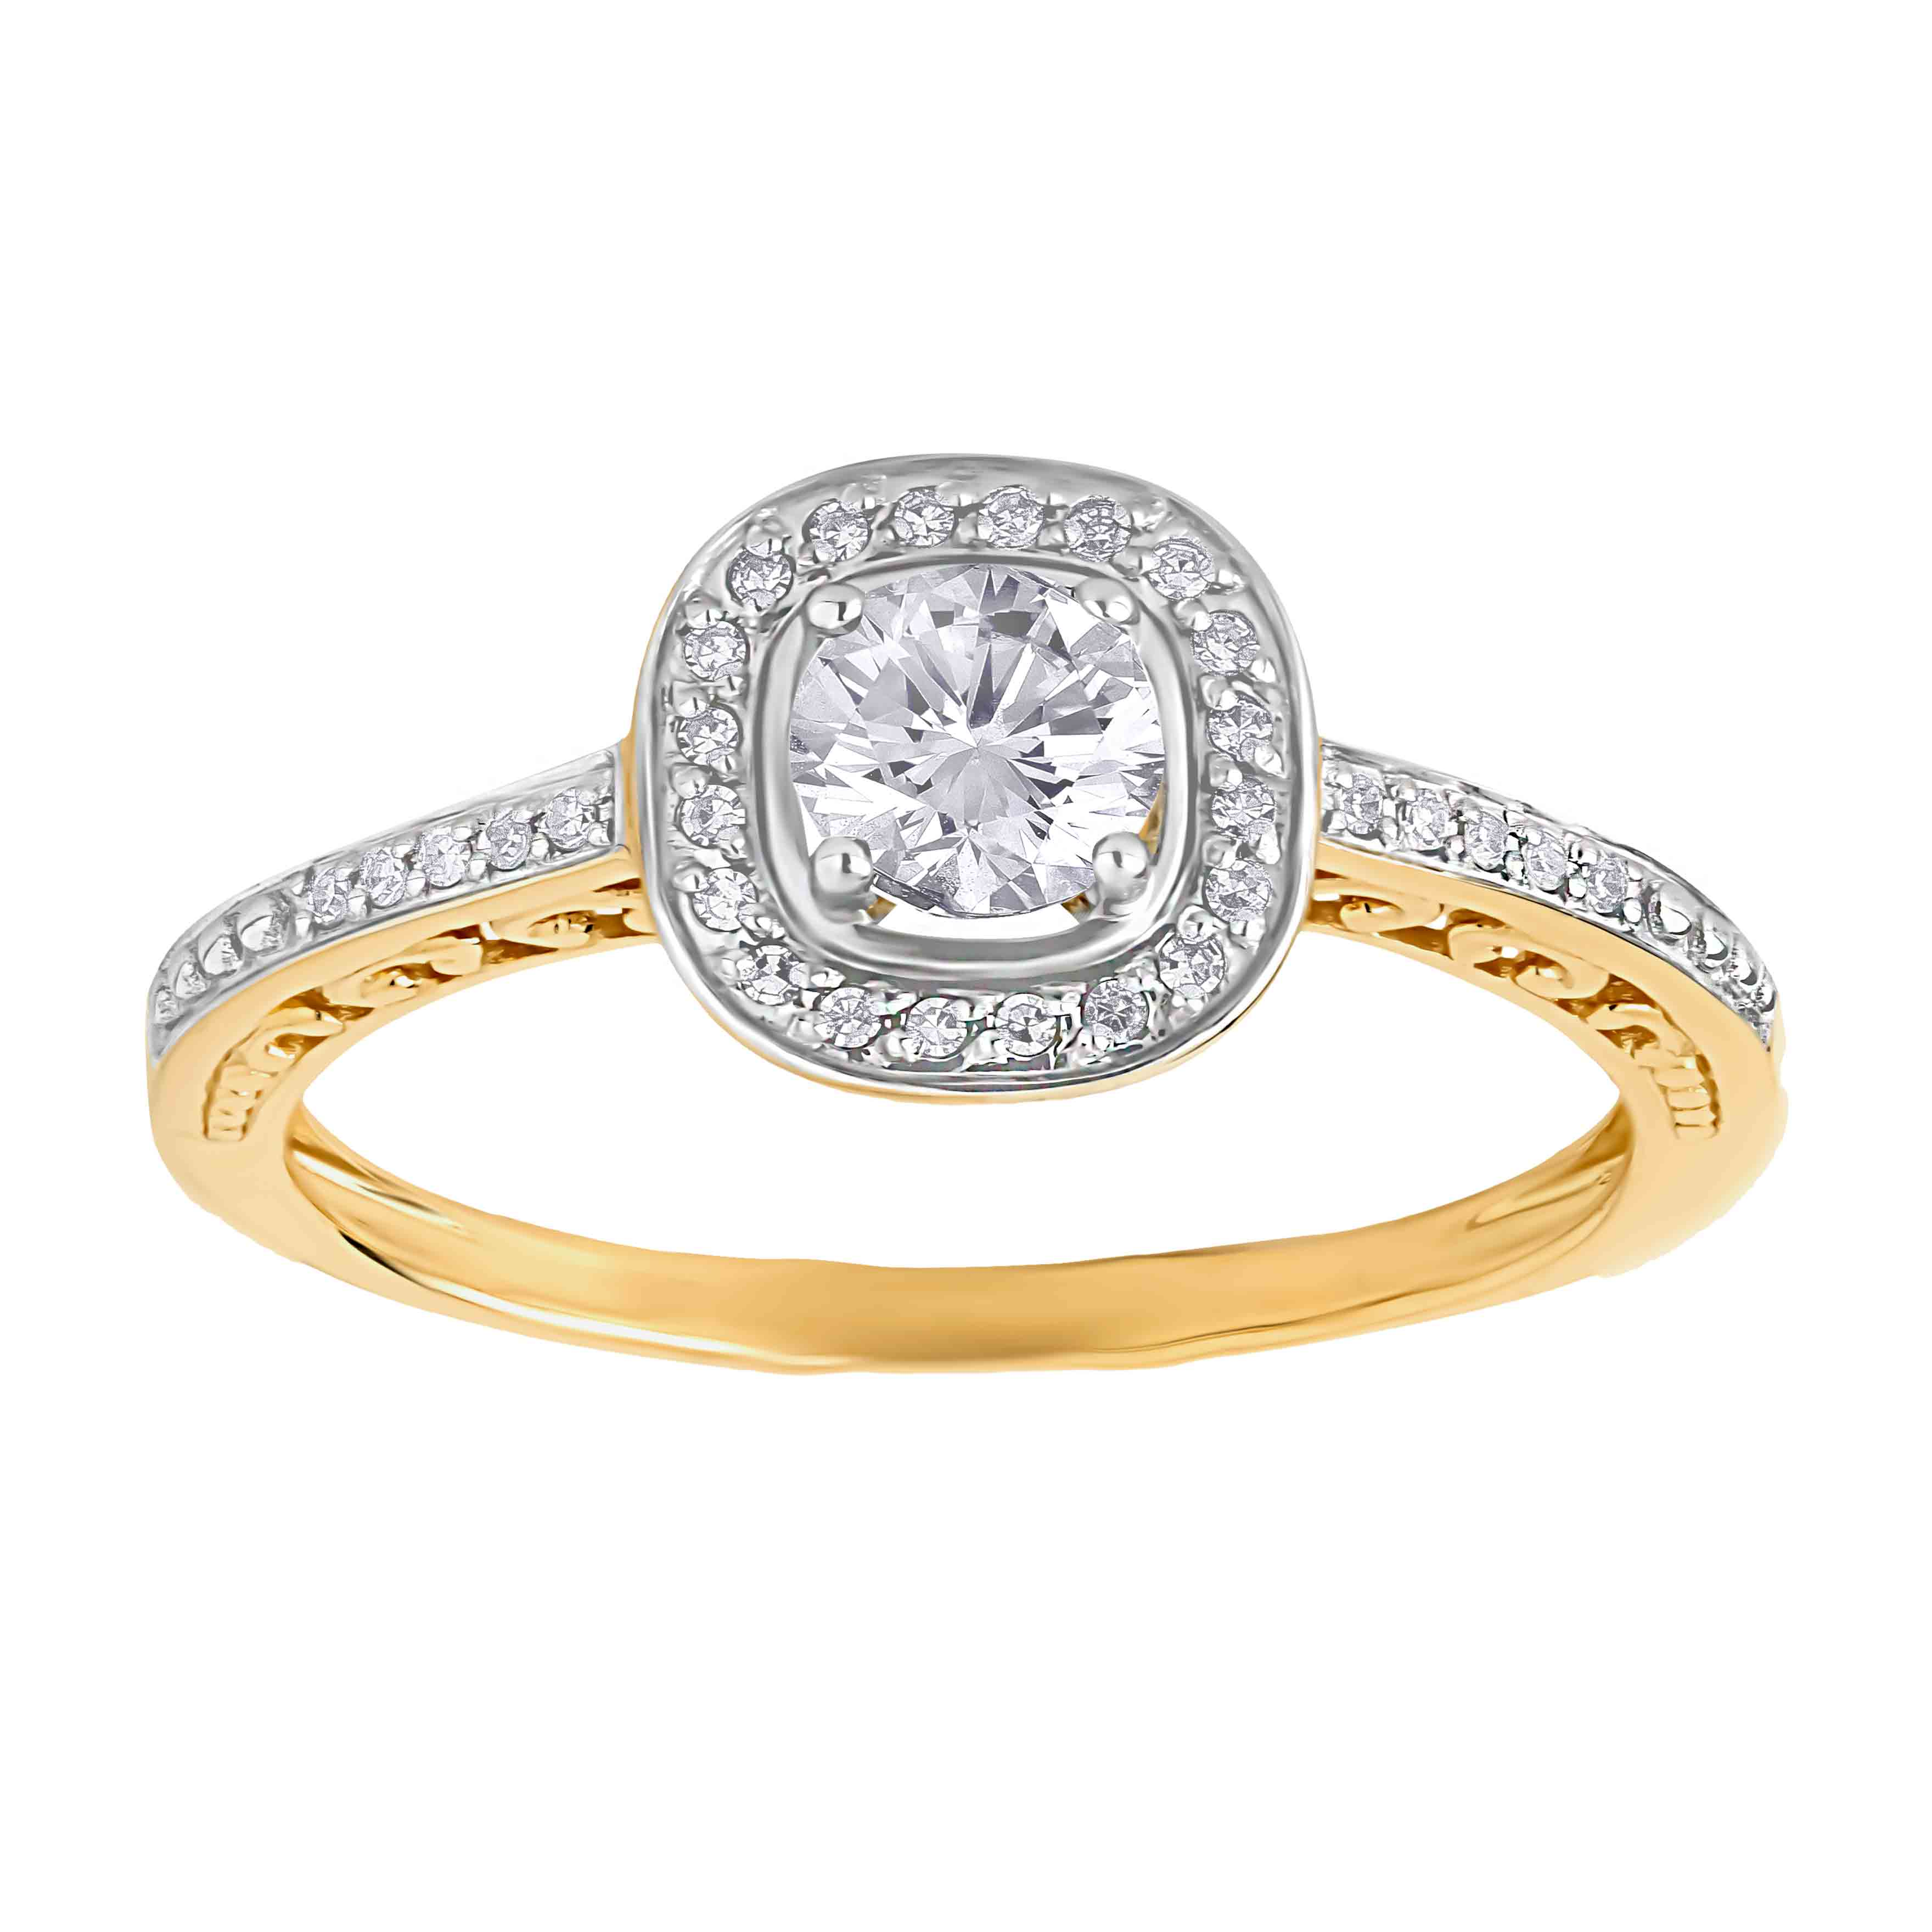 14kt yellow gold Swarovski topaz and diamond affordable engagement ring. View 2